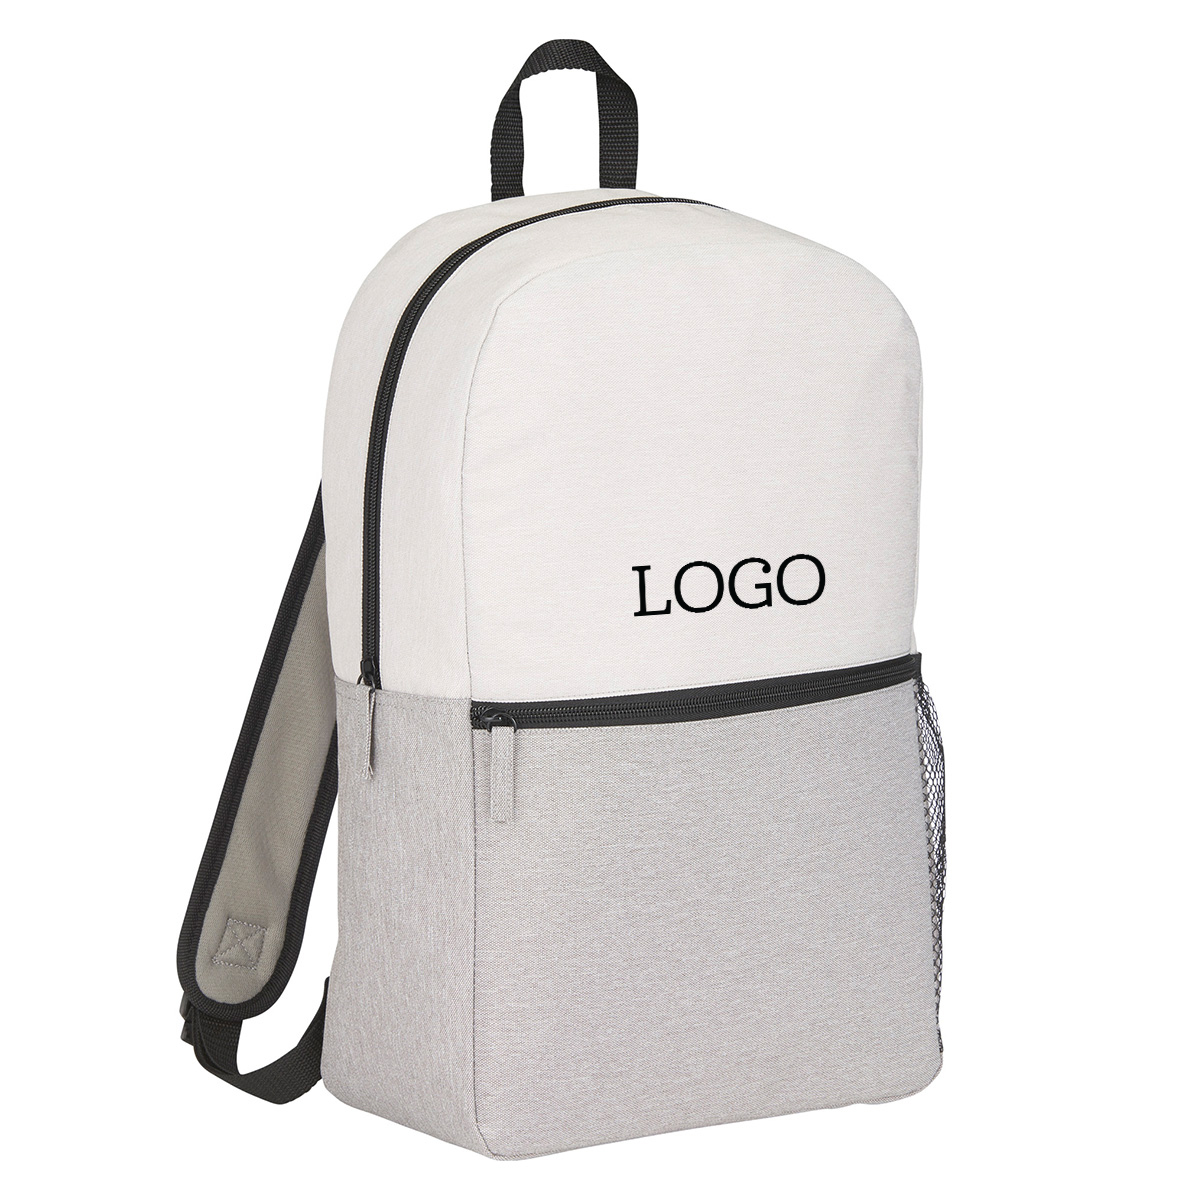 250765 nihad backpack one color imprint one location